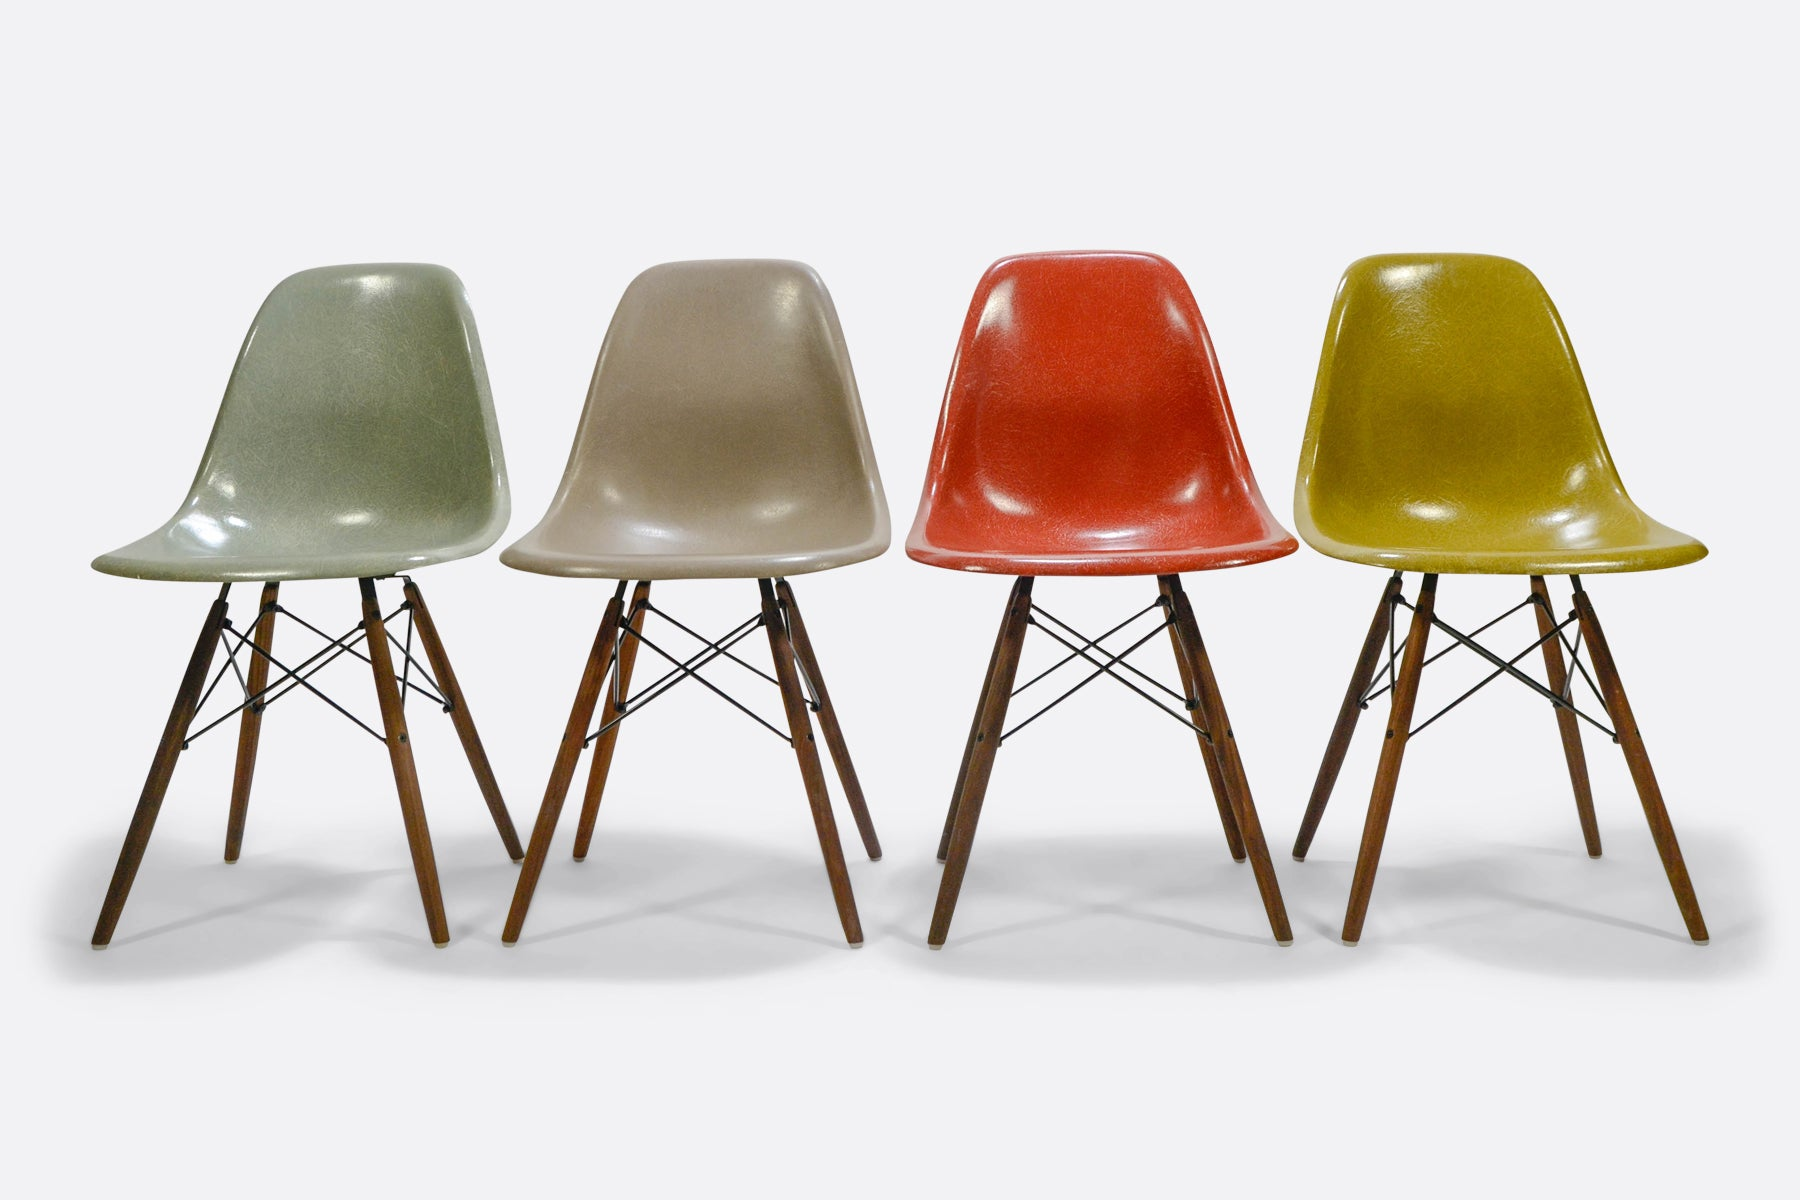 Modern Vintage Amsterdam Original Eames Furniture Set